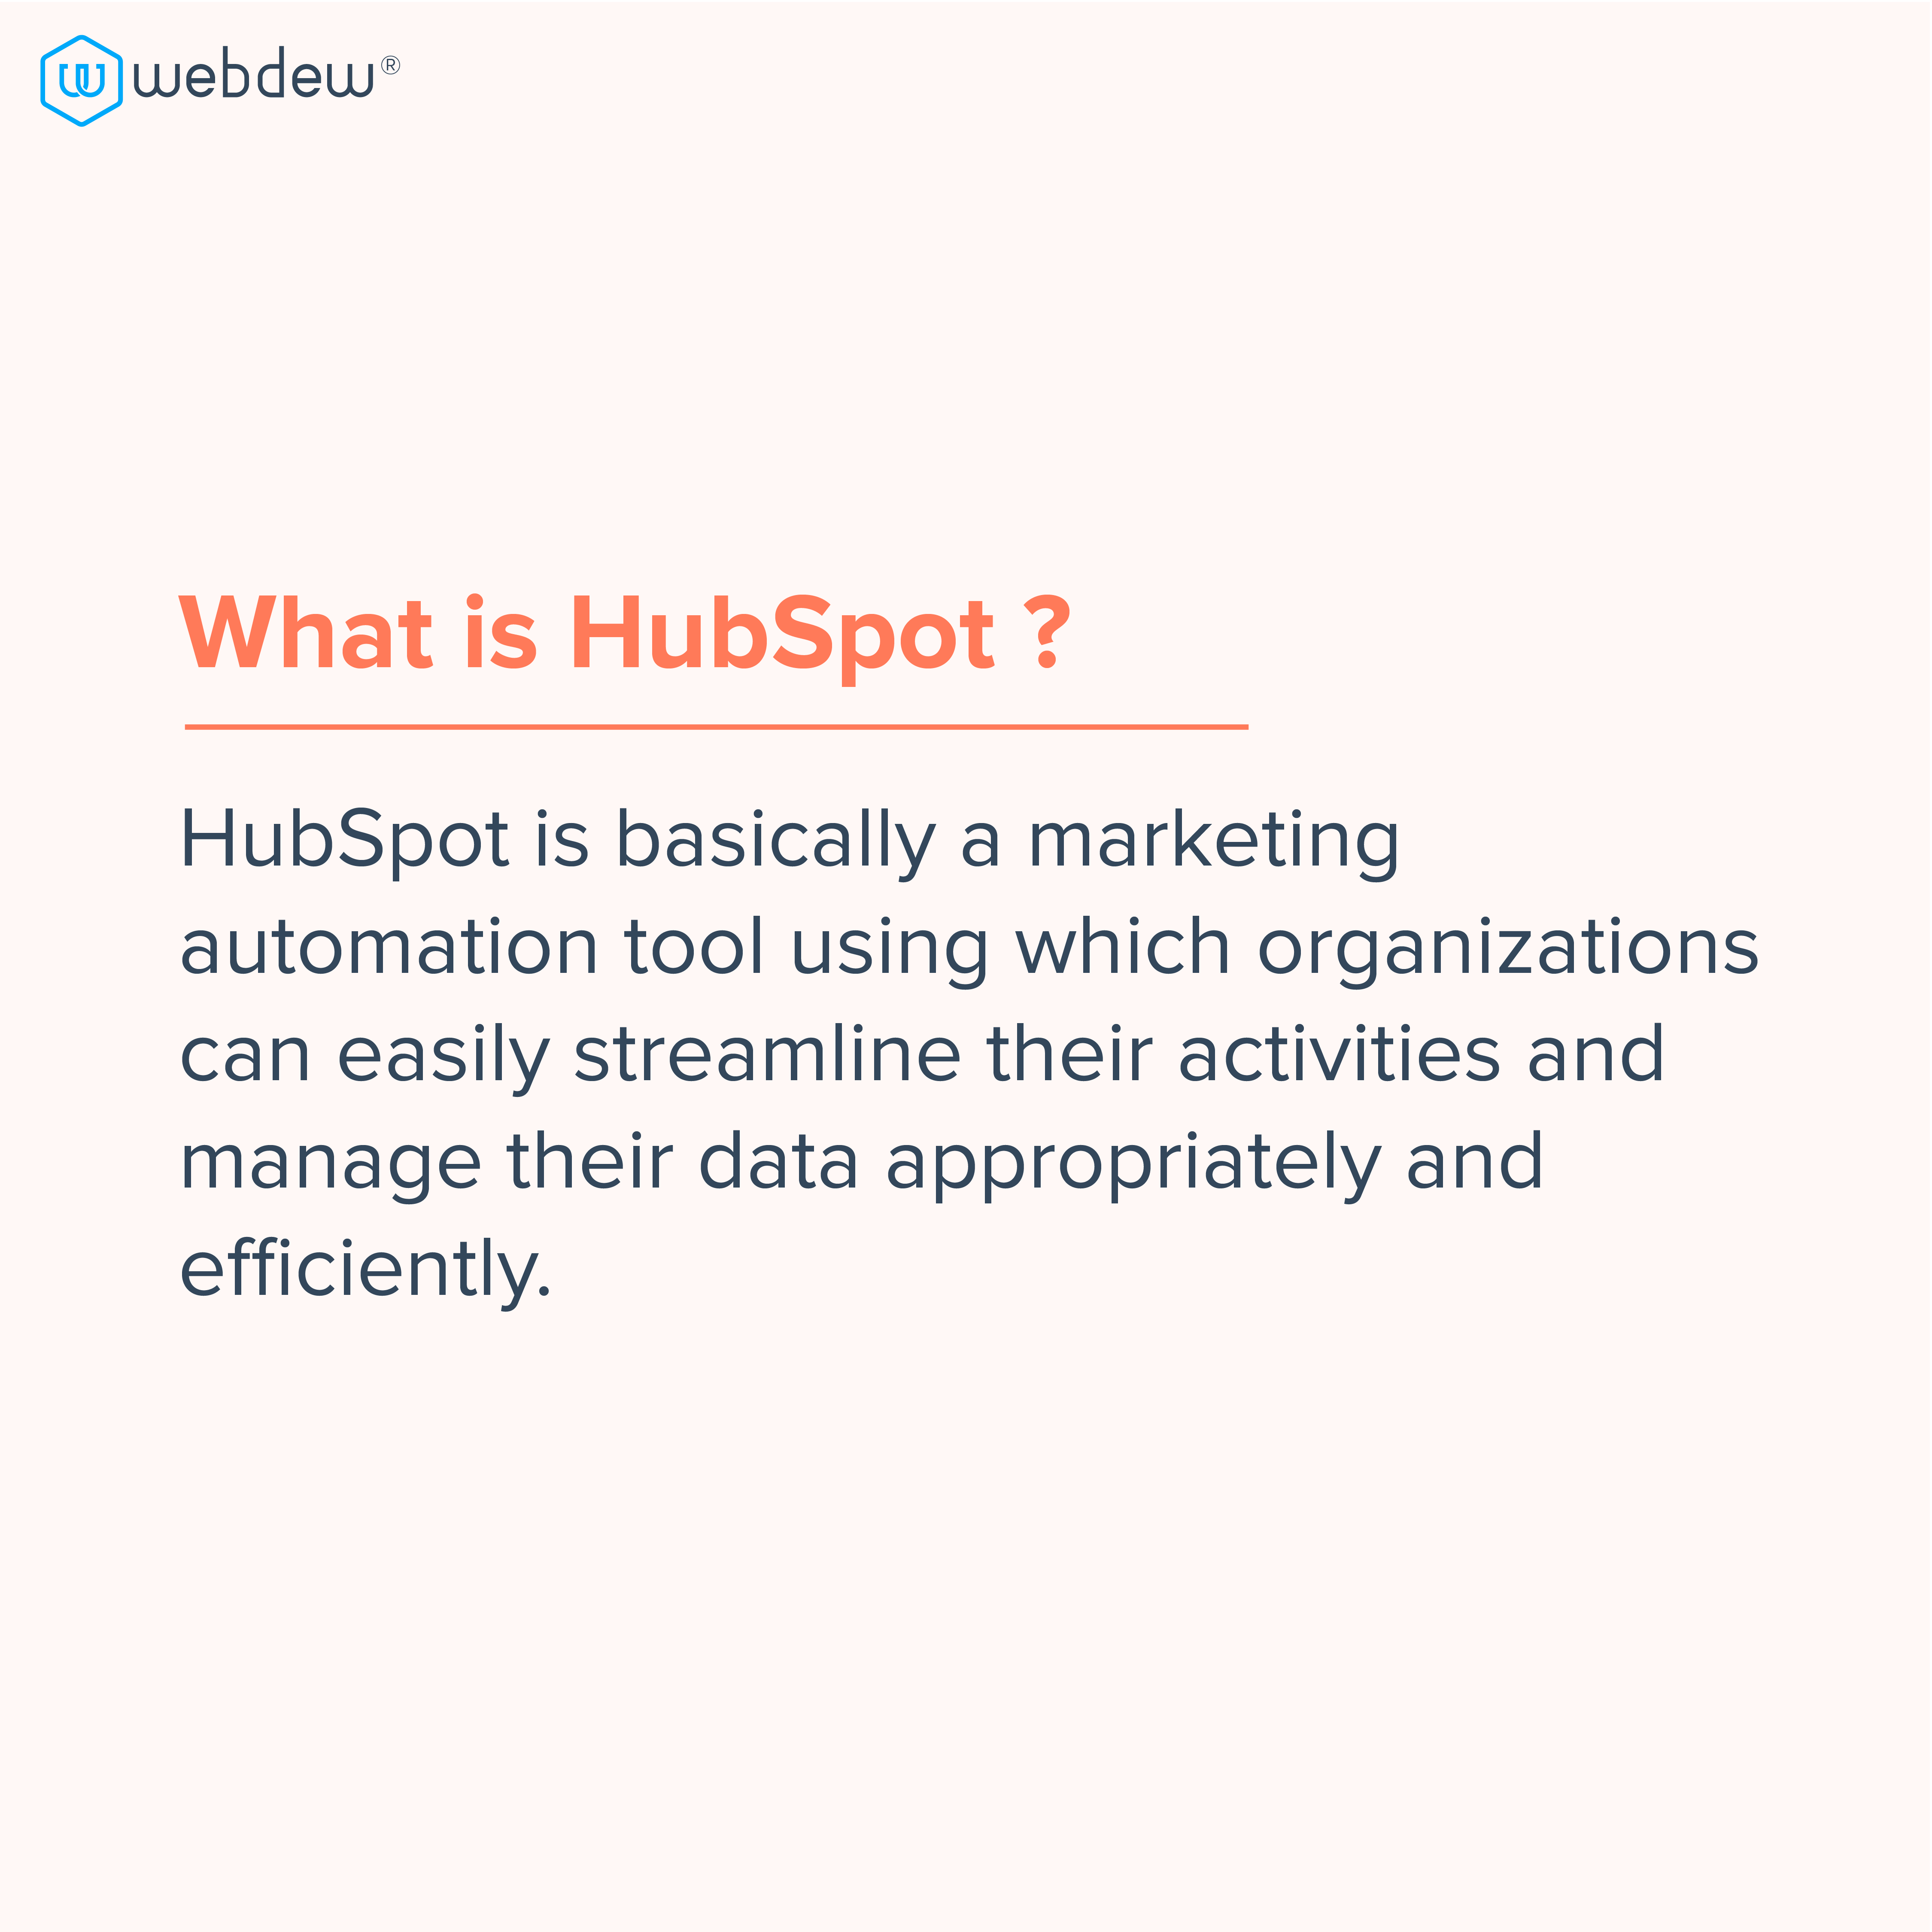 2. what is HubSpot